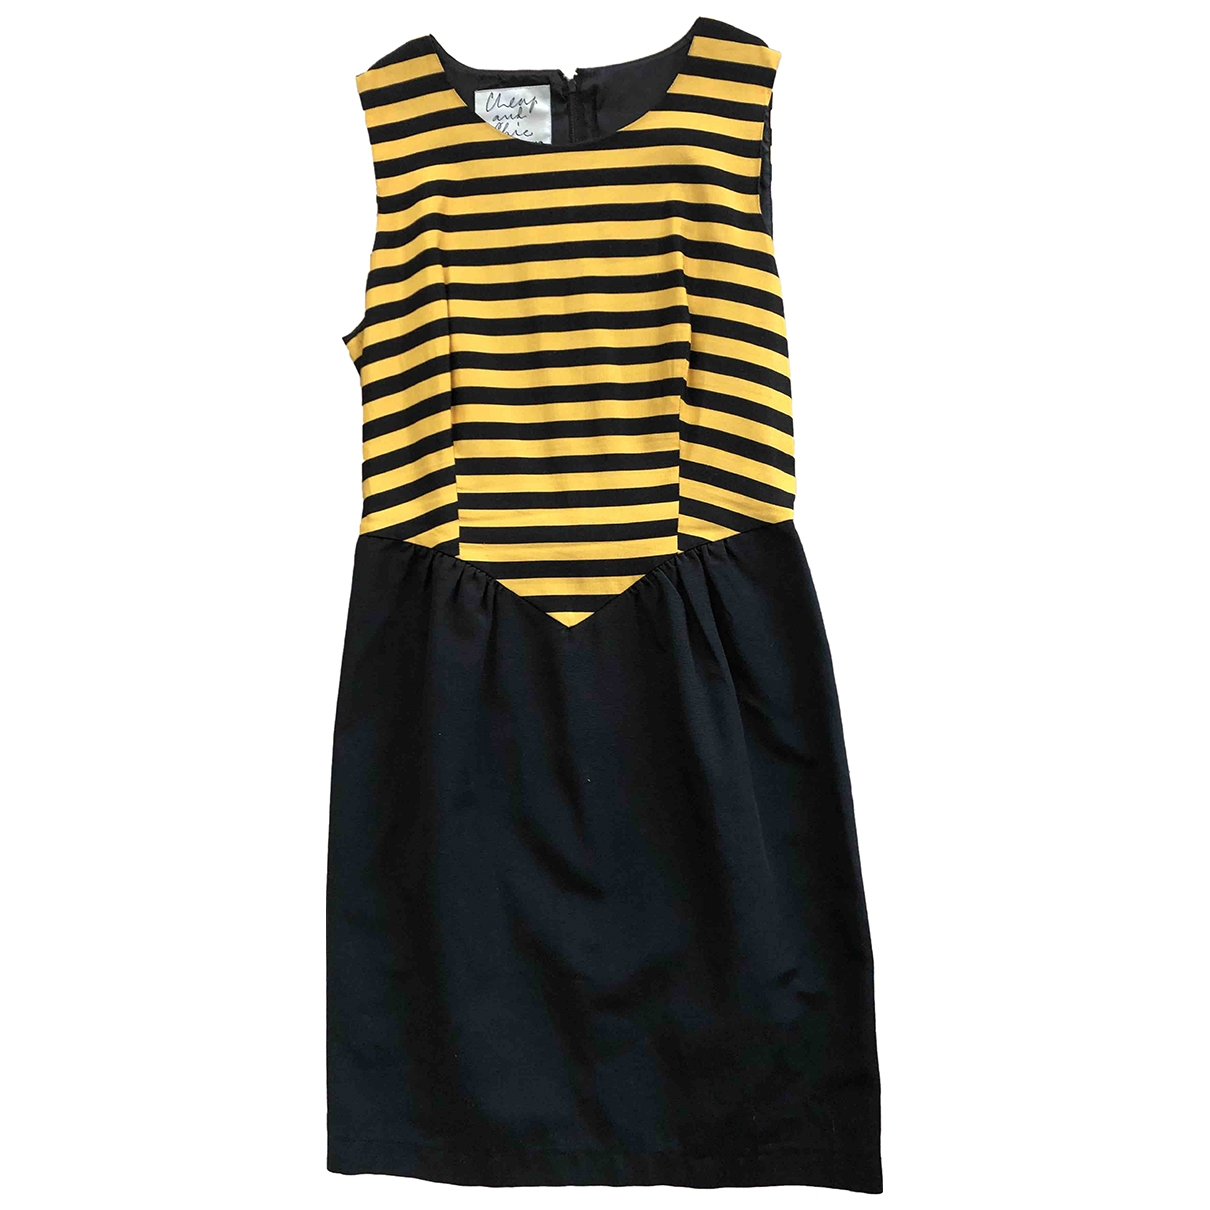 Moschino Cheap And Chic - Robe   pour femme en coton - jaune